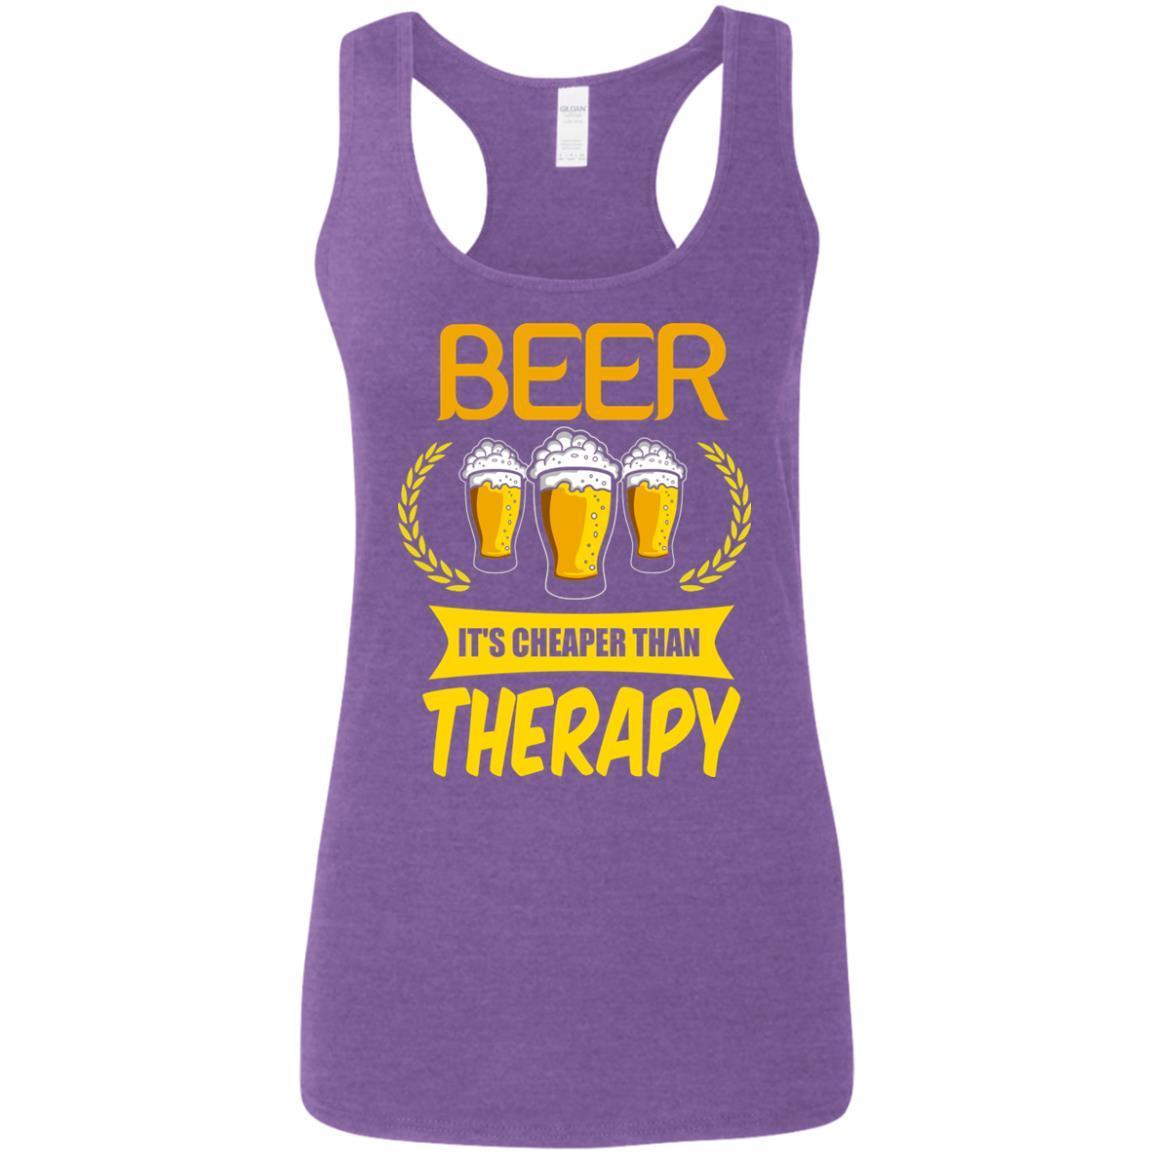 Beer It's Cheaper Than Therapy